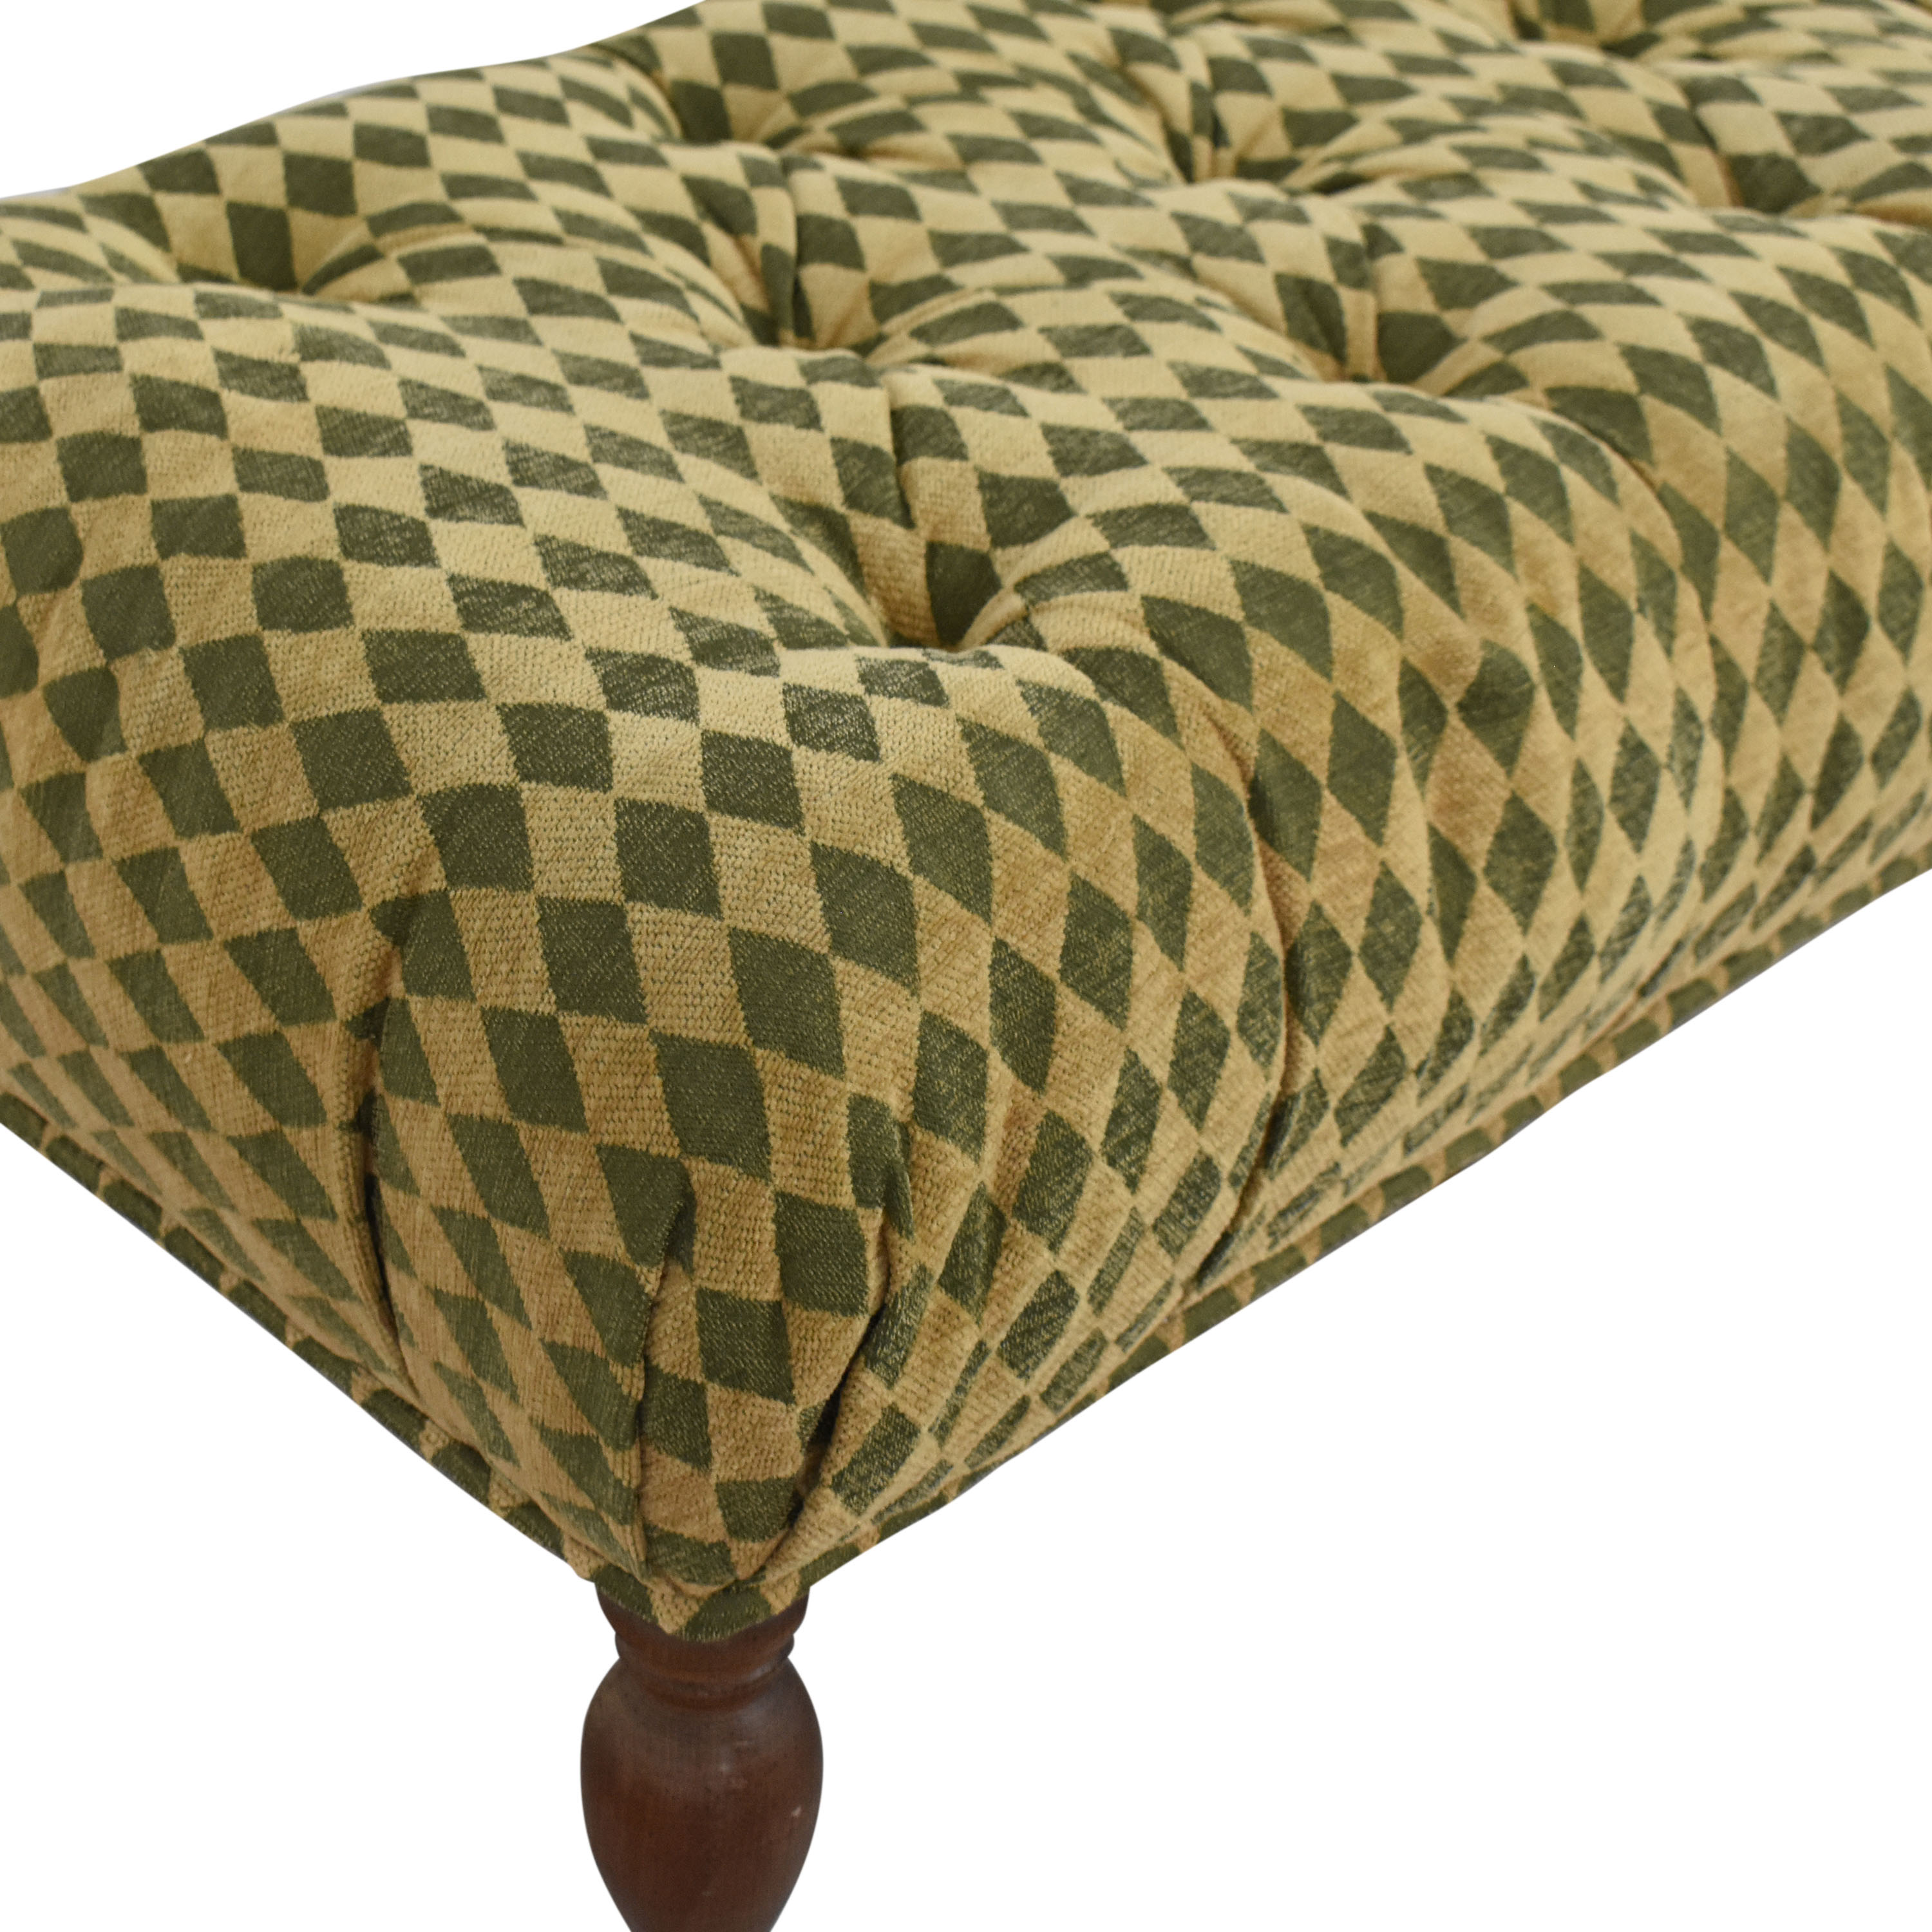 Lee Industries Lee Industries Tufted Bench second hand